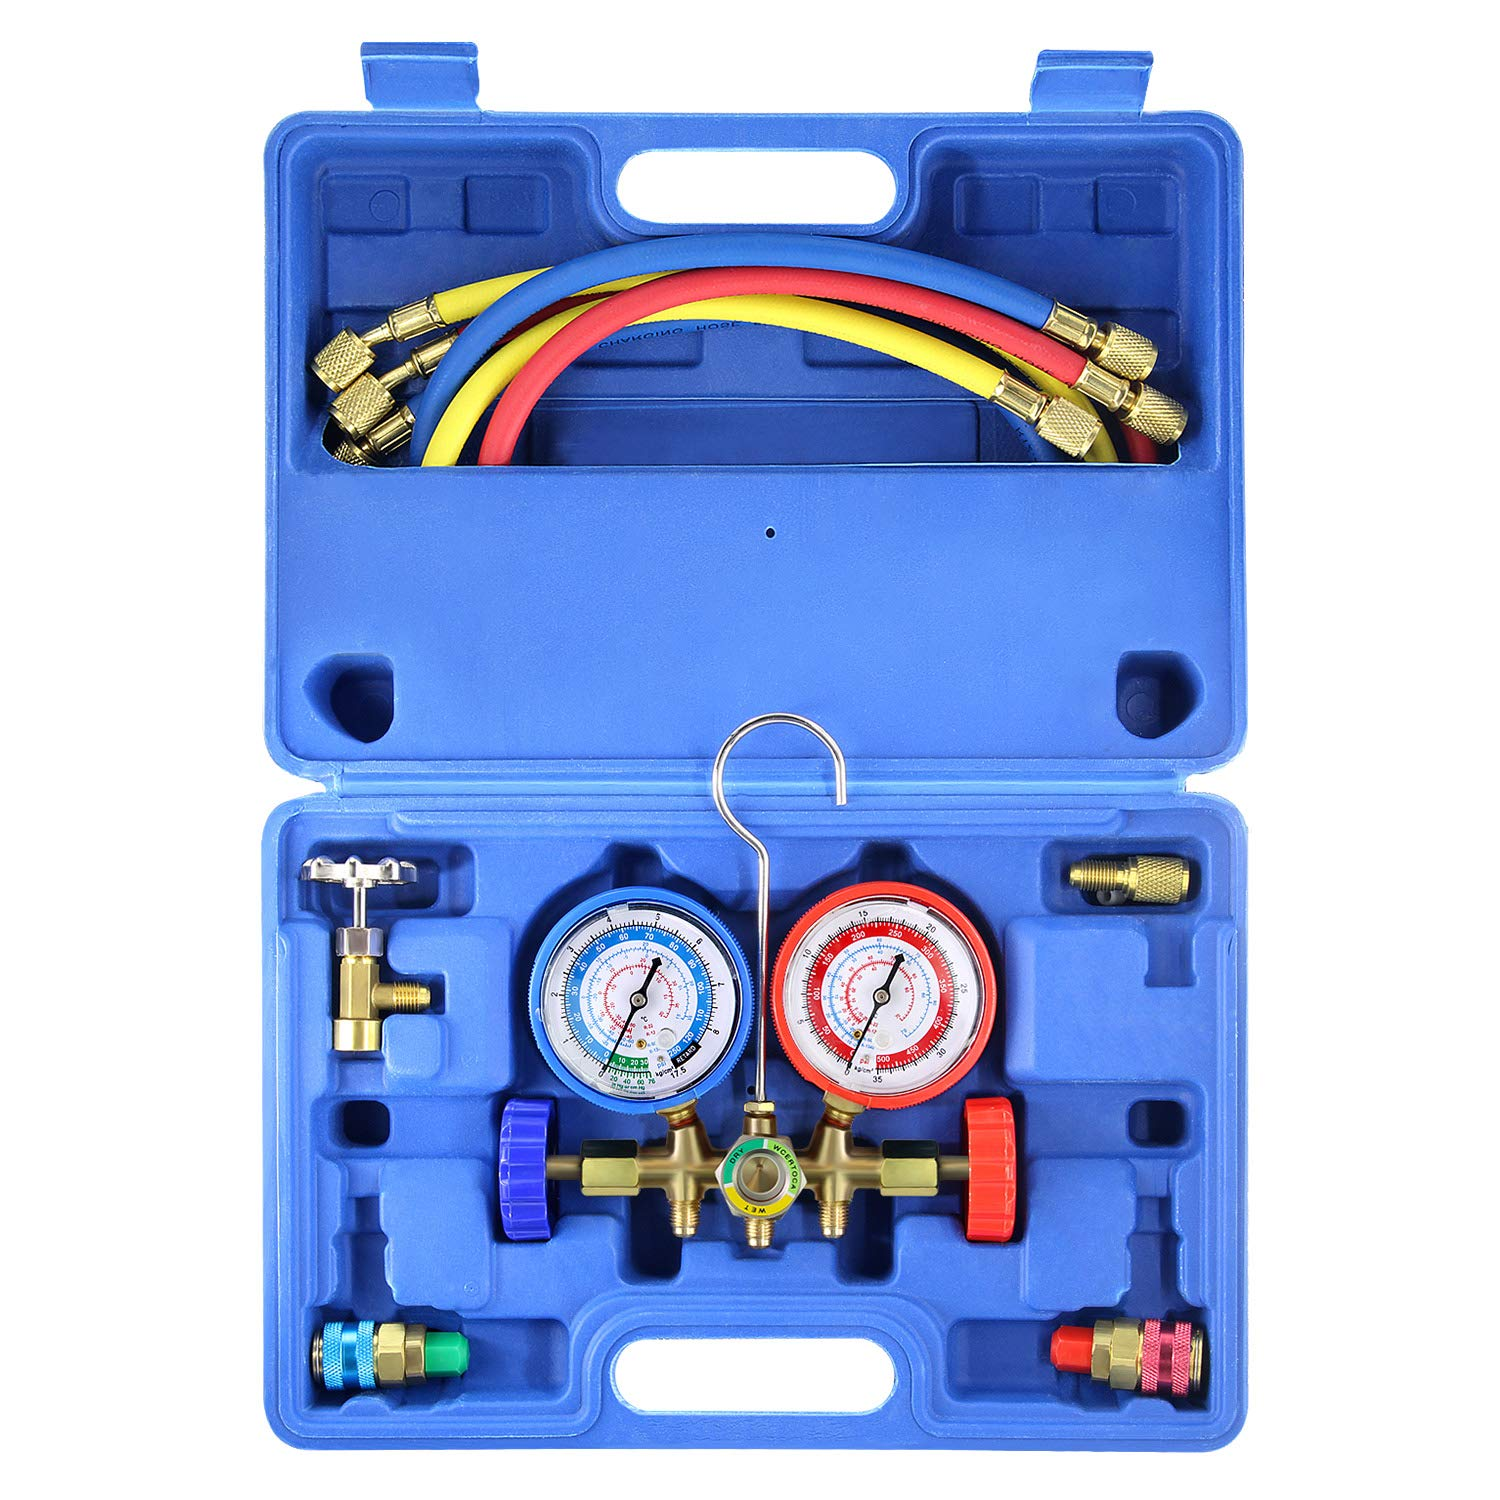 AURELIO TECH MGS-0005-WZ 3 Way A/C Diagnostic Manifold Gauge Set, Fits R134A R12 R22 and R502 Refrigerants, with 5FT Hose, Acme Tank Adapters, Couplers and Can Tap by AURELIO TECH